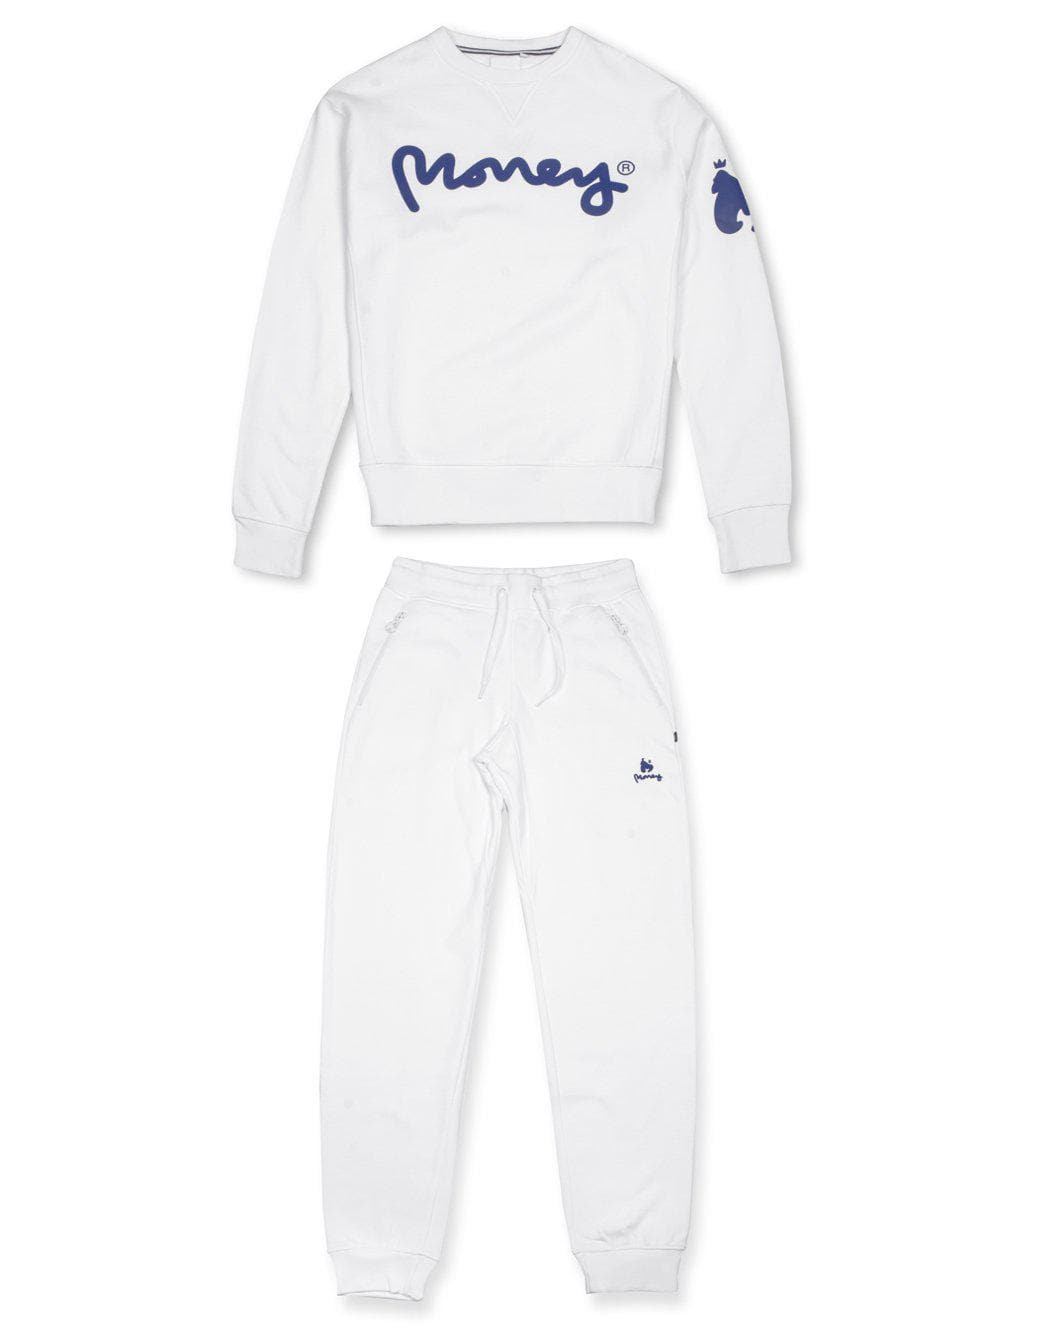 money clothing signature money logo white crew neck tracksuit